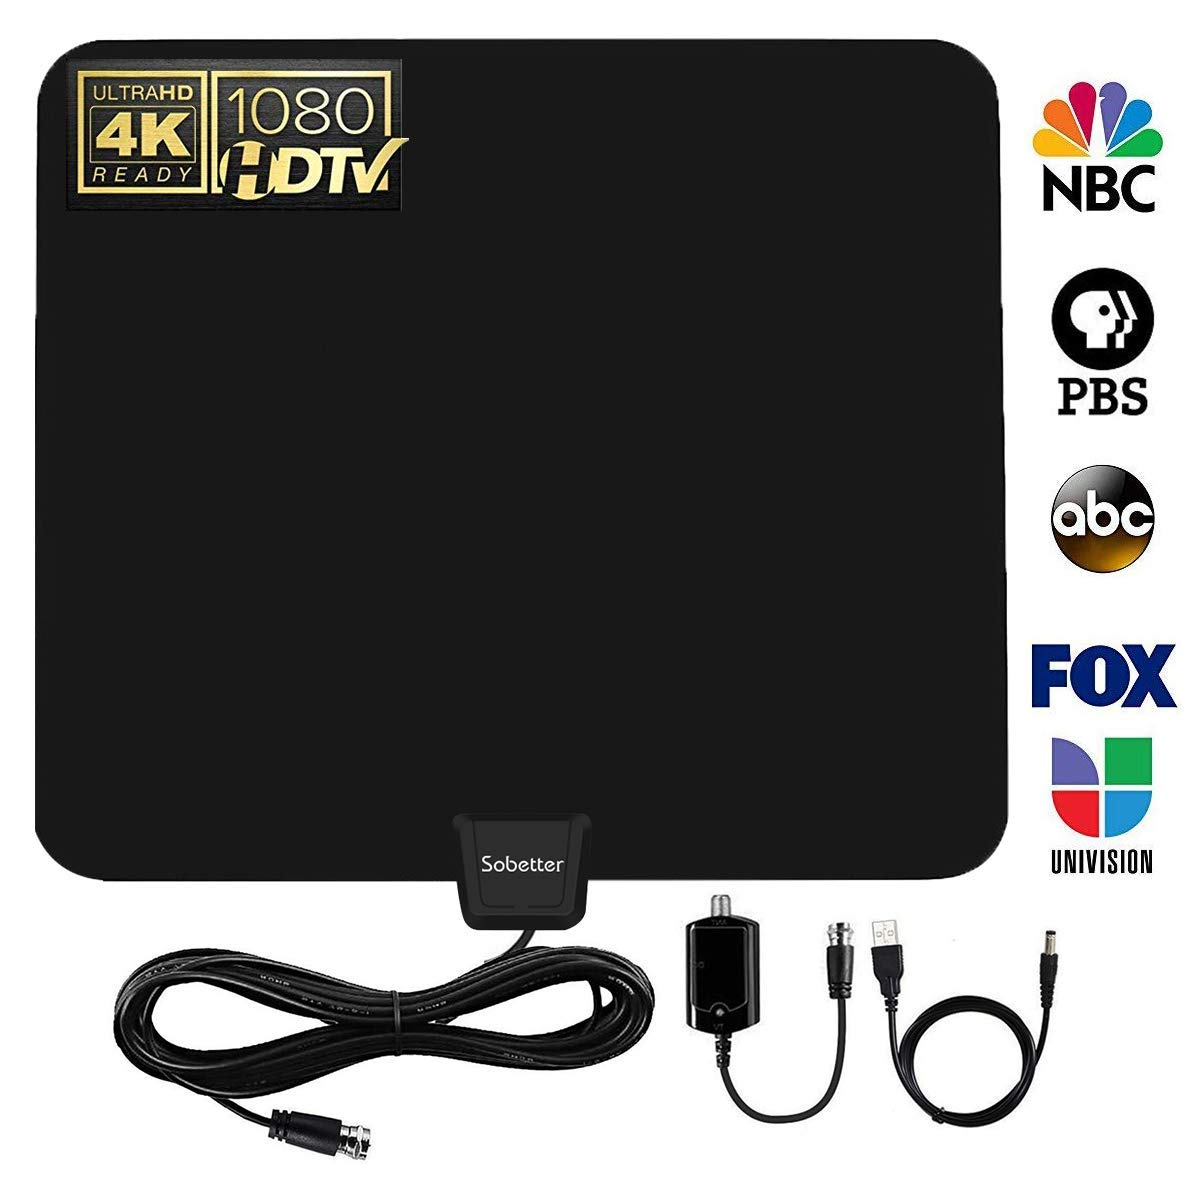 Upgraded 2018 Version HD Digital TV Antenna - Sobetter Best 65 Miles Long Range High-Definition with HDTV Amplifier Signal Booster Indoor - Amplified 13.3ft Coax Cable - Support All TV's - 1080p 4K R